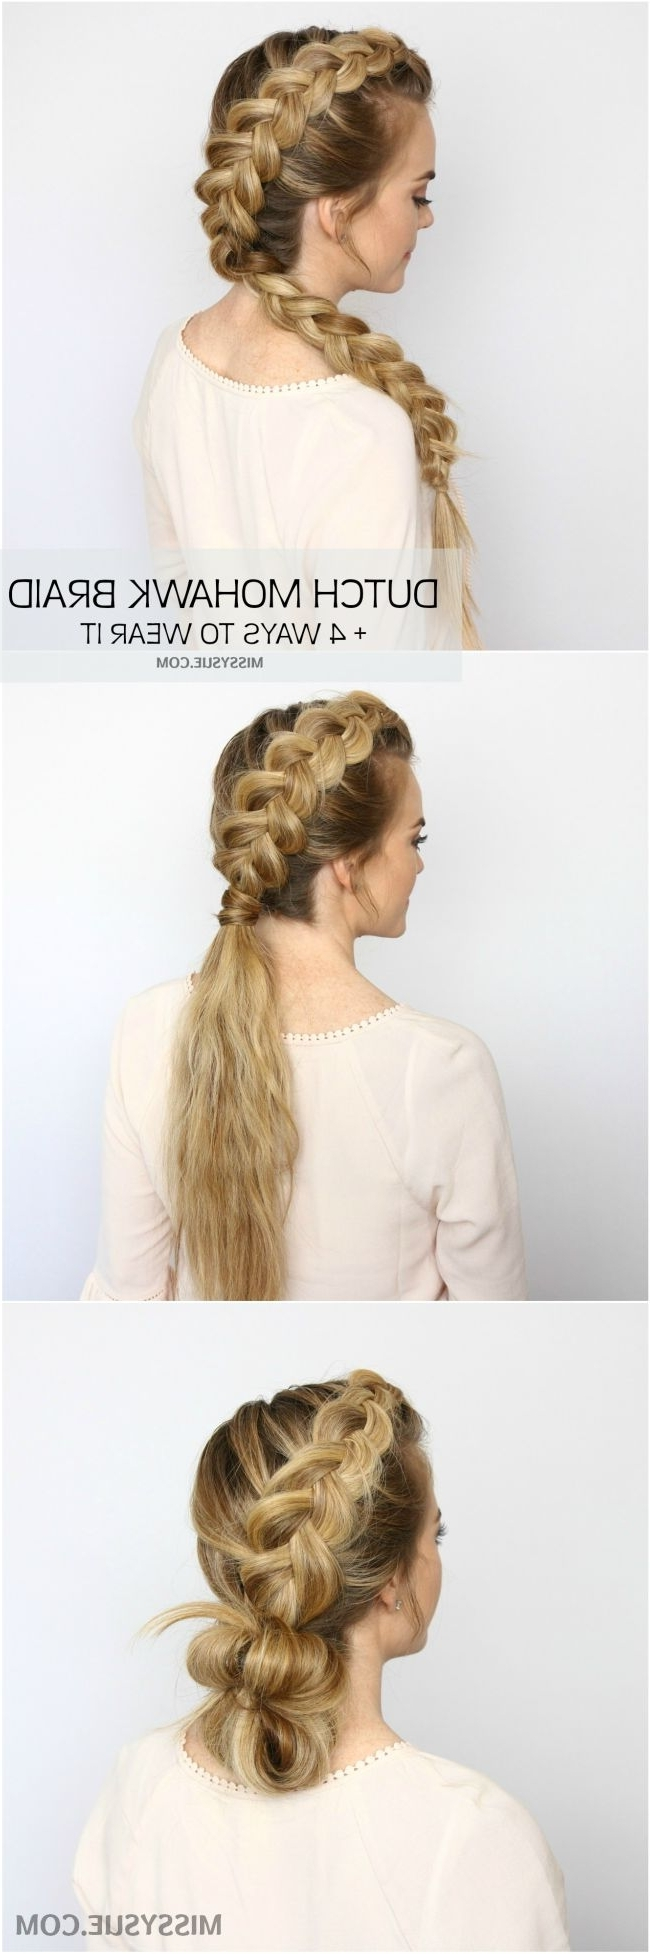 Newest Cornrows Enclosed By Headband Braid Hairstyles For 351 Best Turtorials Braids Diy Hair Styles Images On Pinterest (View 7 of 15)